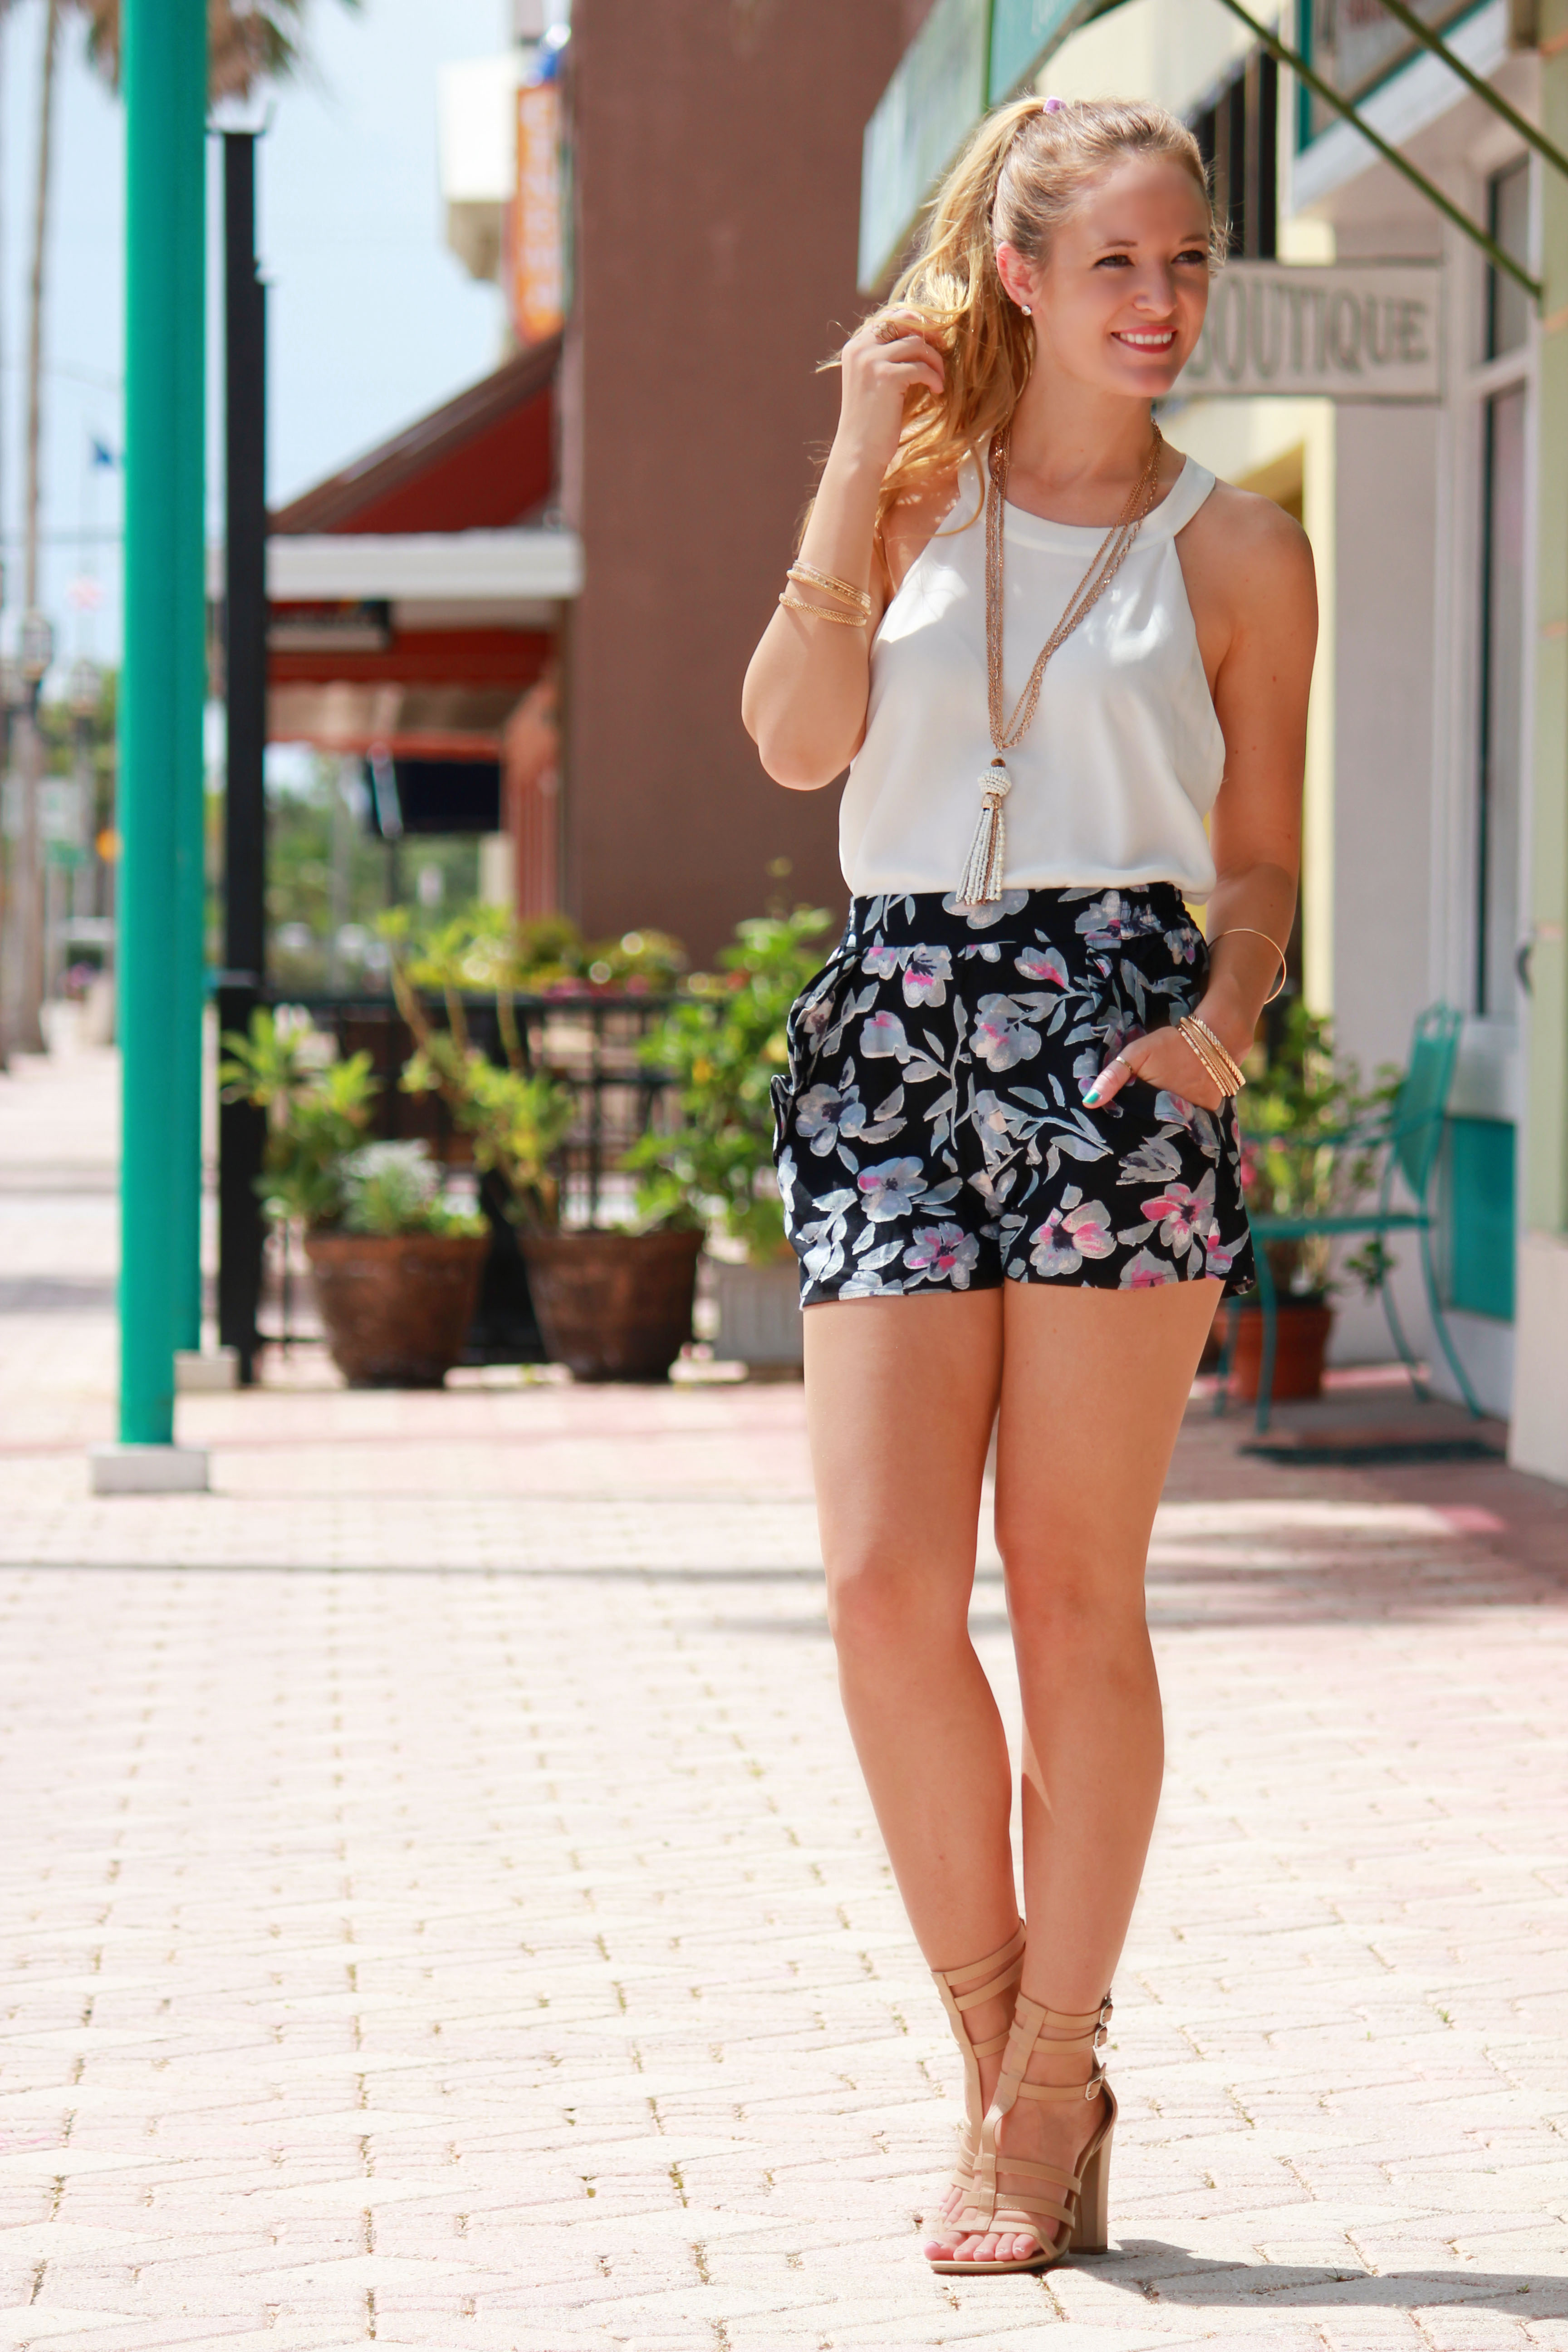 Sophie and trey top, urban outfitter shorts, sophie and trey shoes, gladiator sandals, summer outfit, casual outfit, floral shorts, tassel necklace